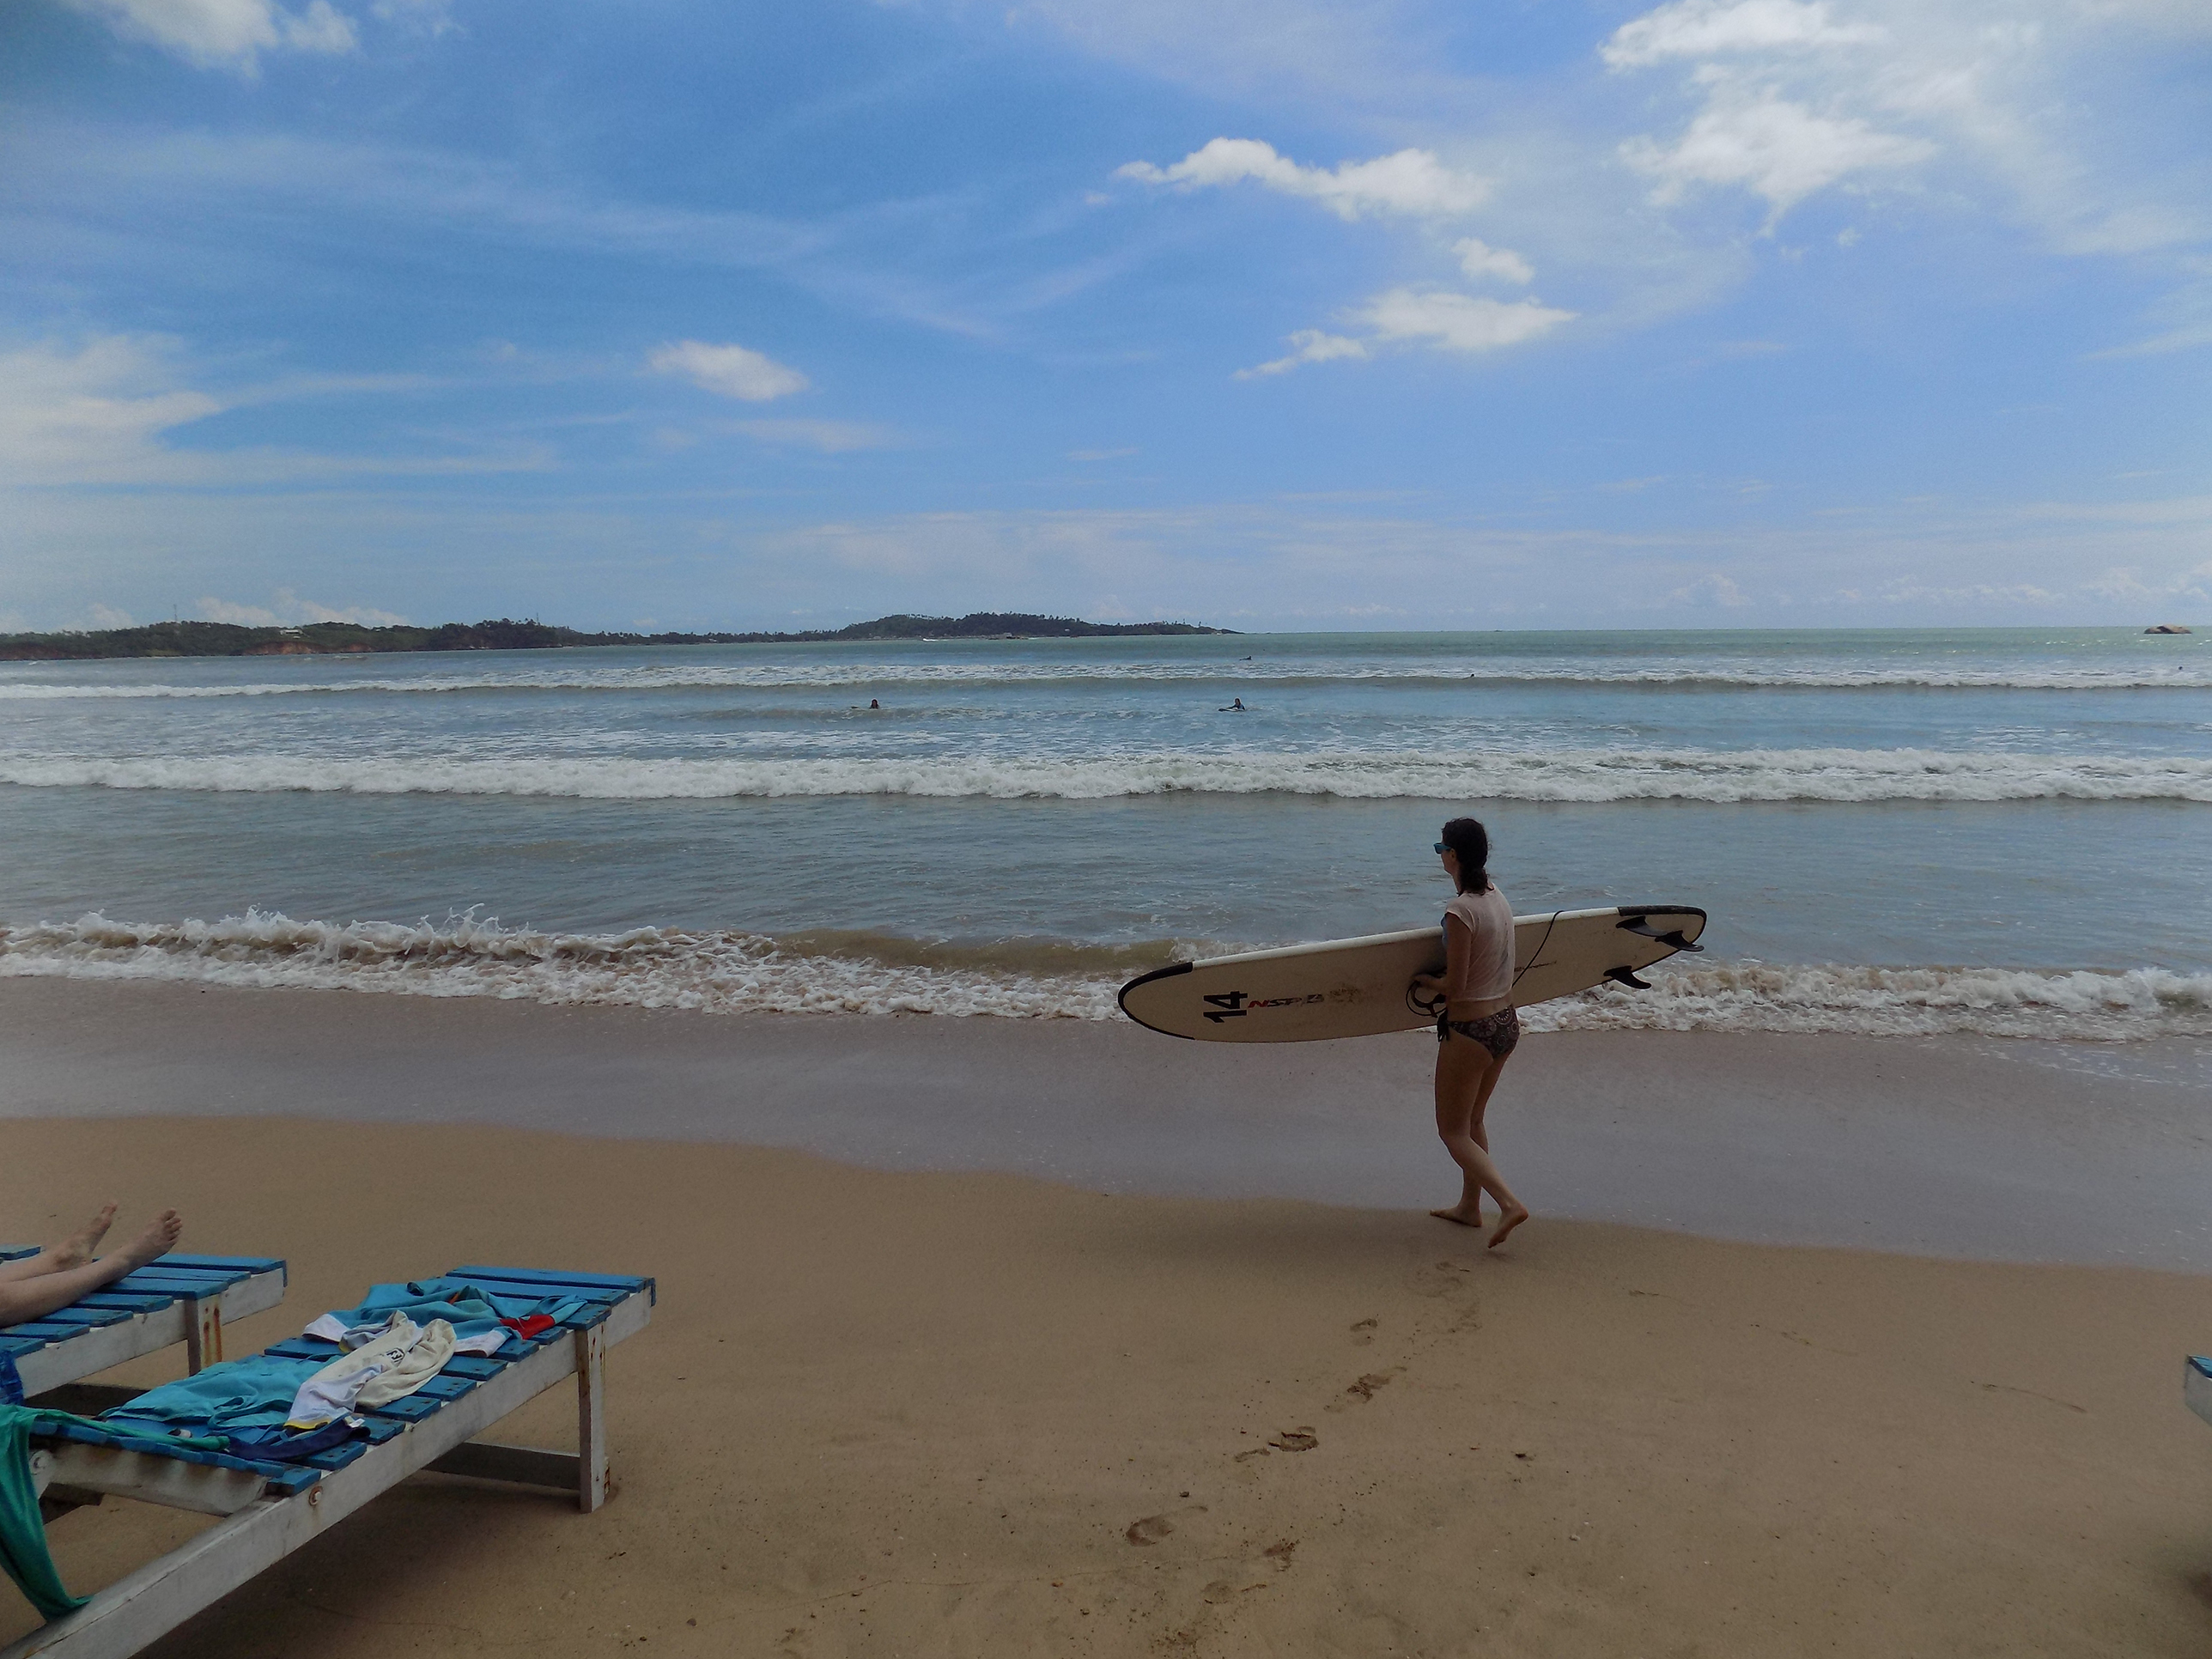 Surfen in Weligama